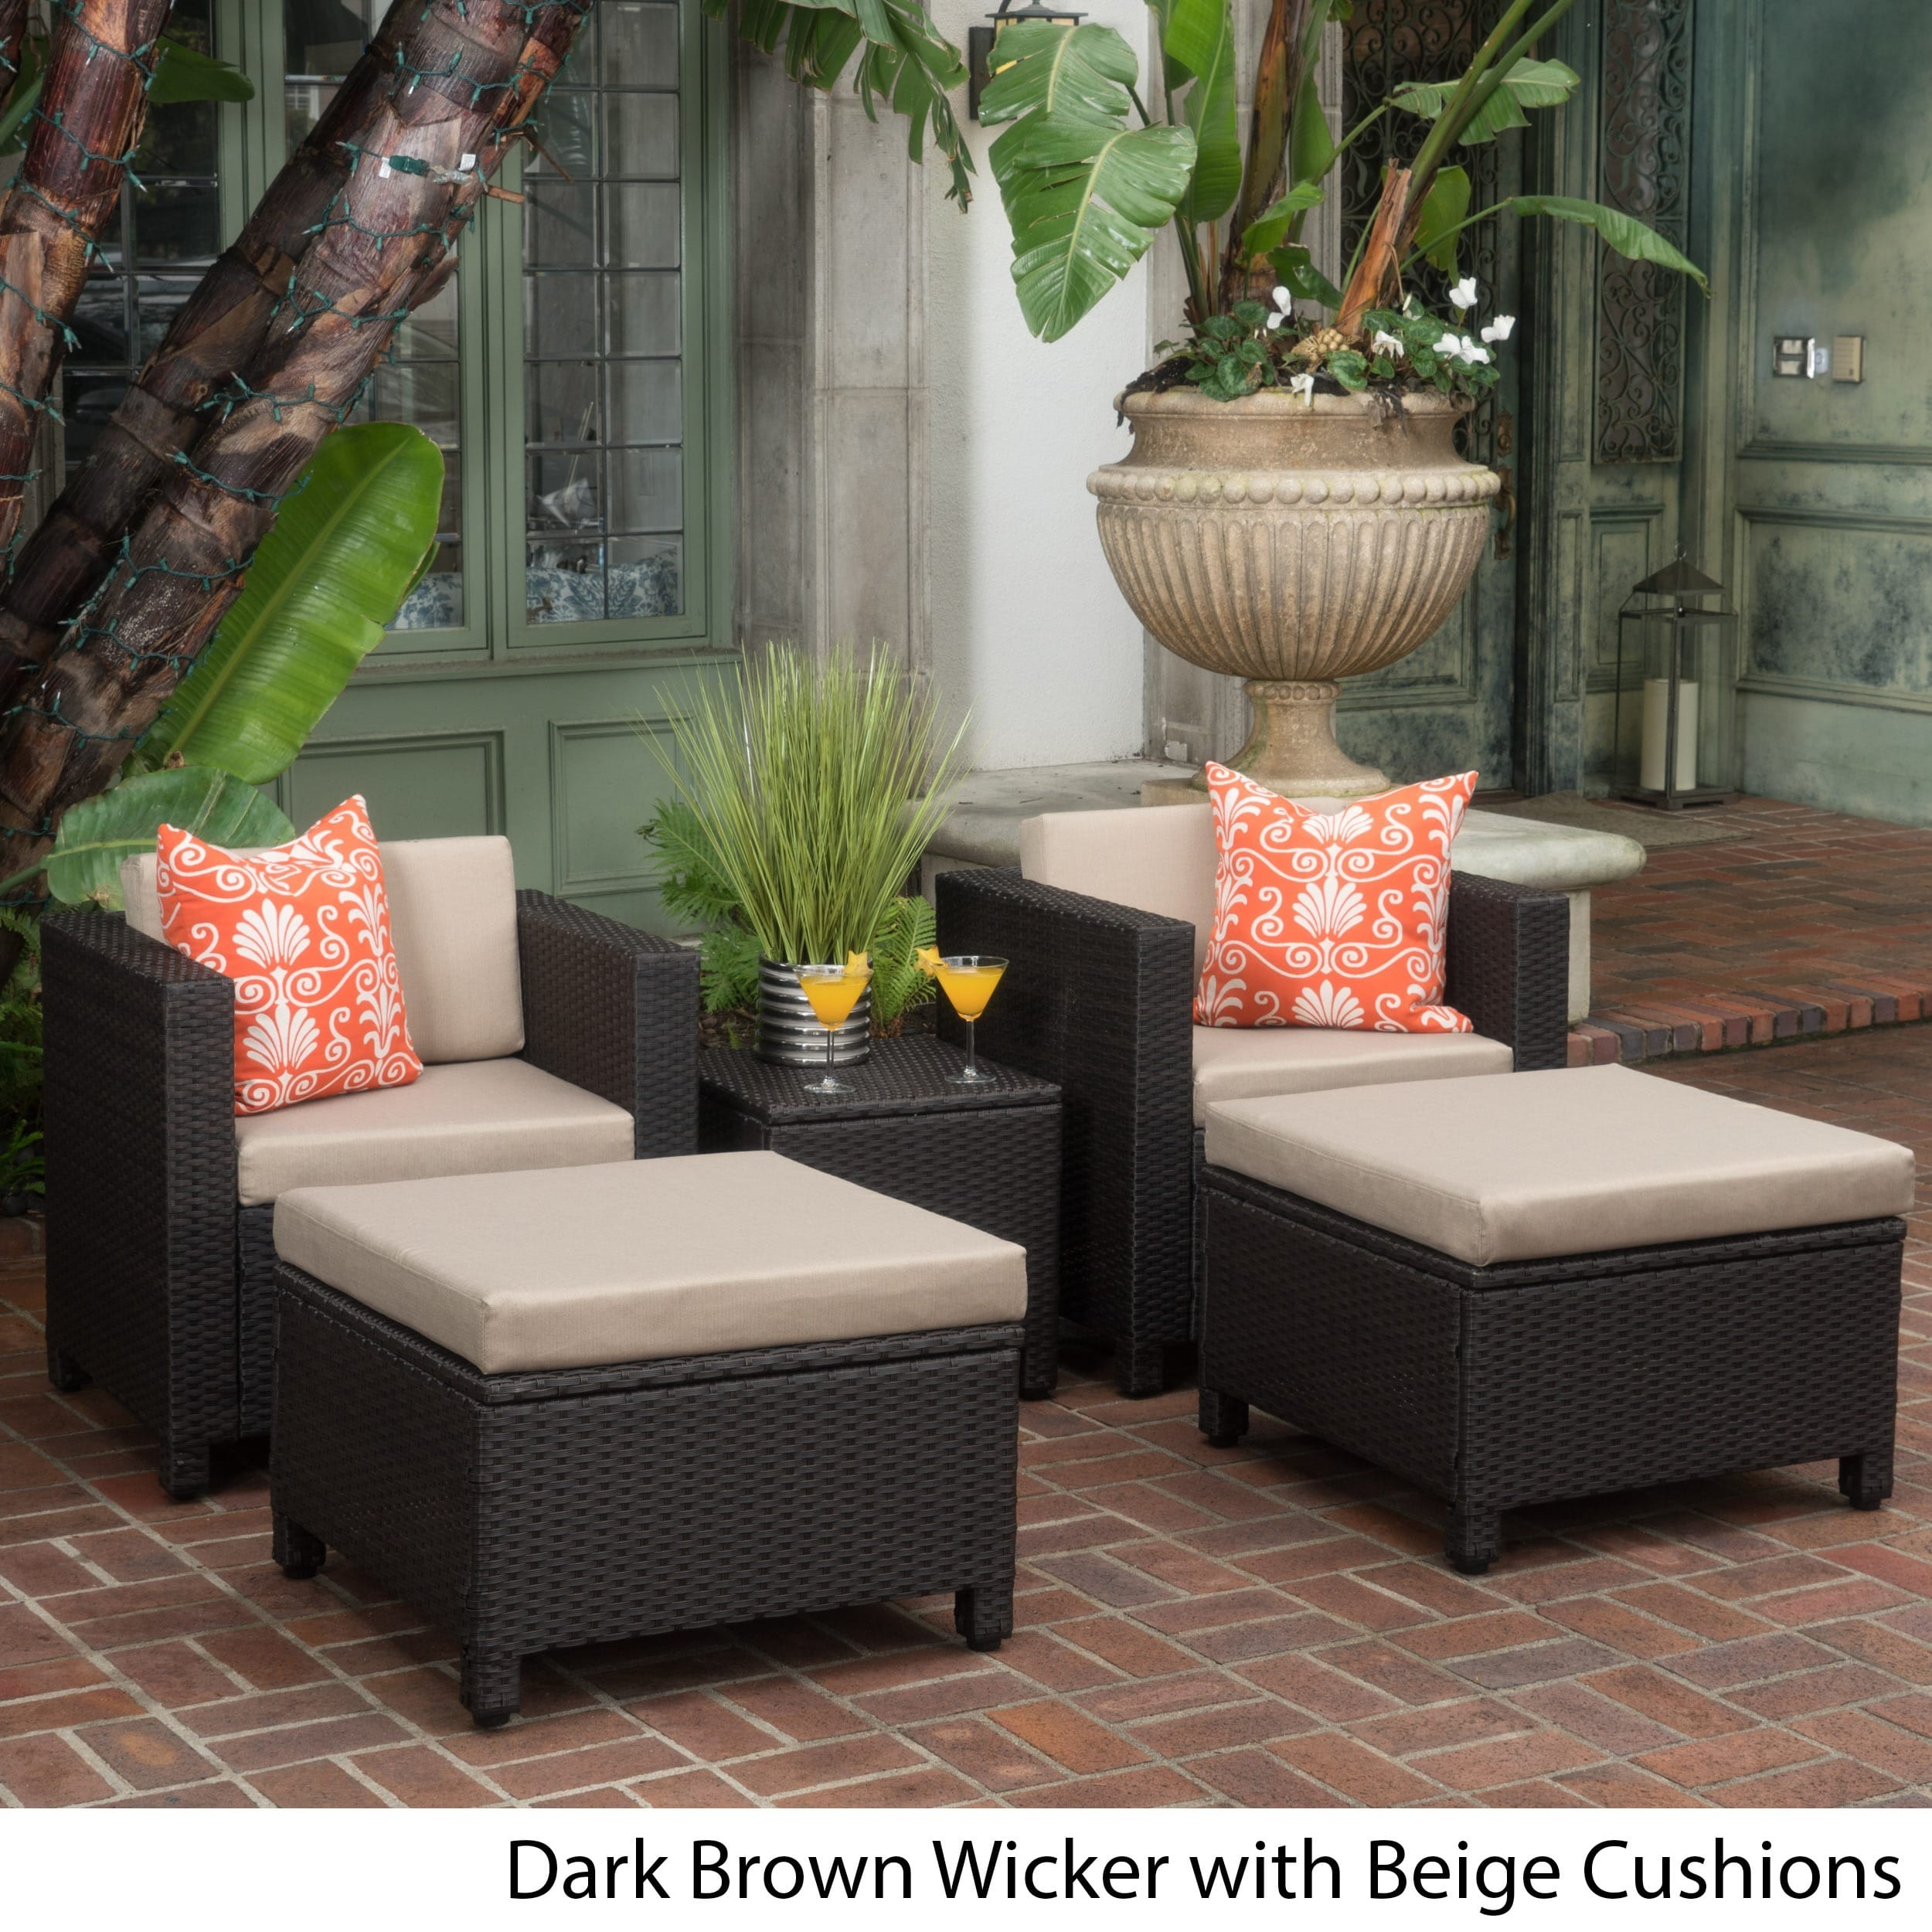 Christopher Knight Home Puerta 5-piece Outdoor Wicker Chat Set with Water Resistant Cushions by